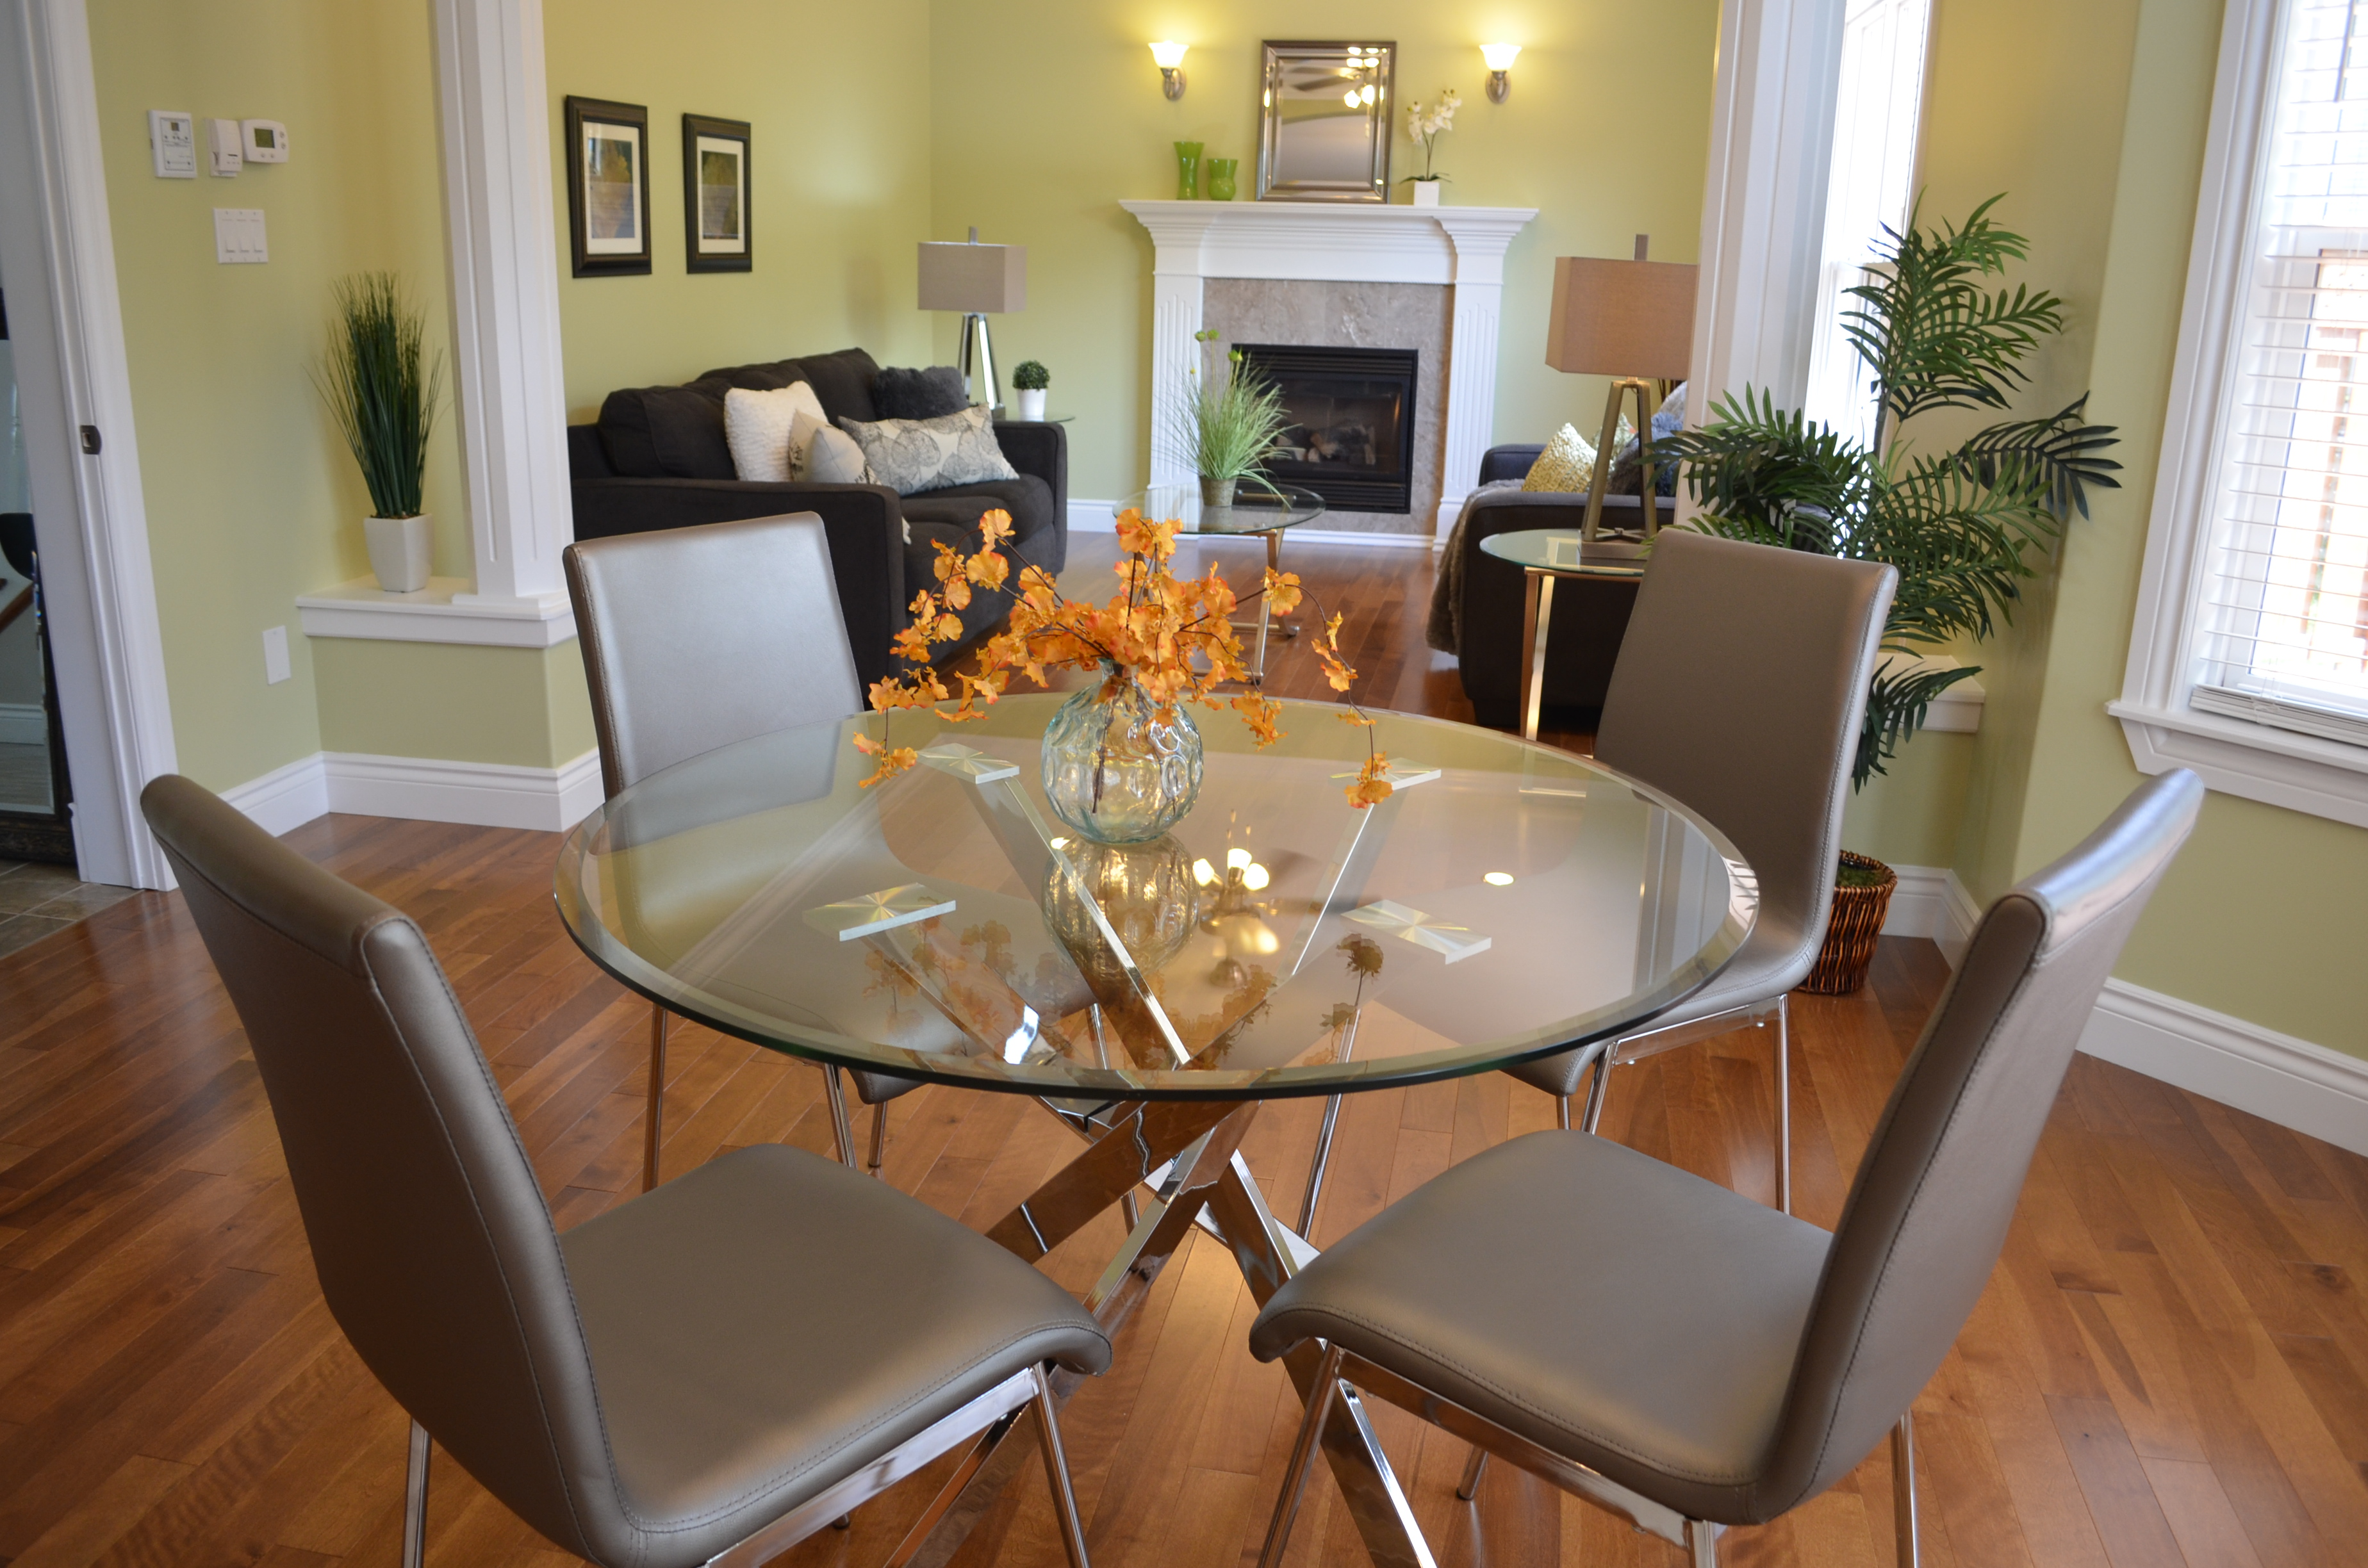 Halifax Home Staging Real Estate Home Design Revive Home Staging Pam MacKinnon Bedford 5